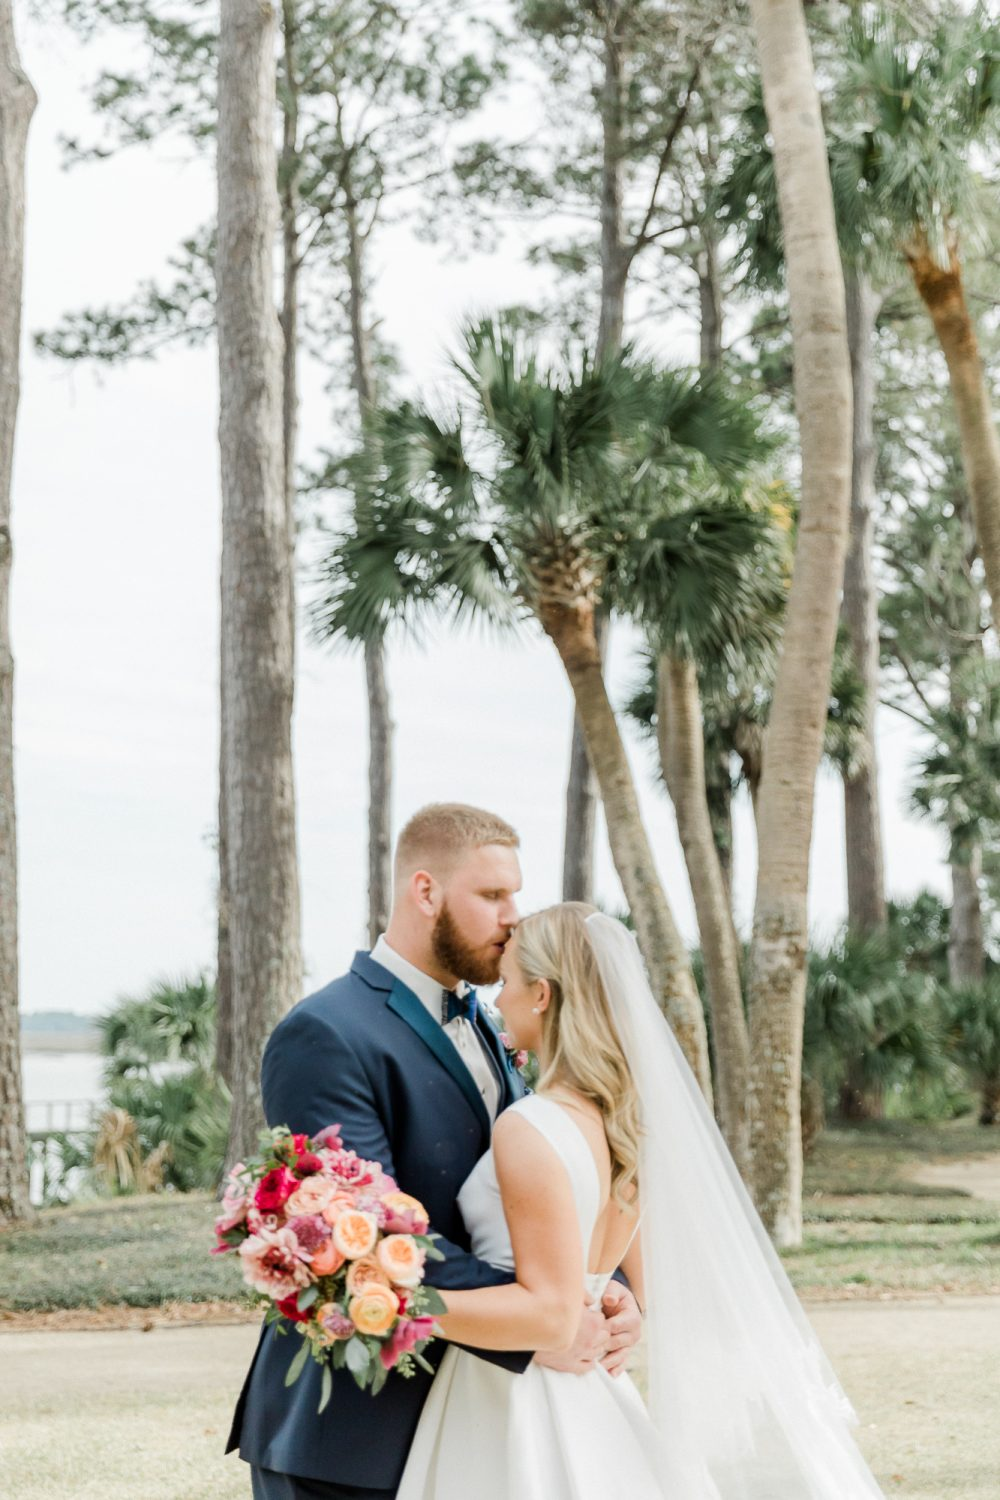 A southern, happy, pink wedding at the Montage Palmetto Bluff in South Carolina.